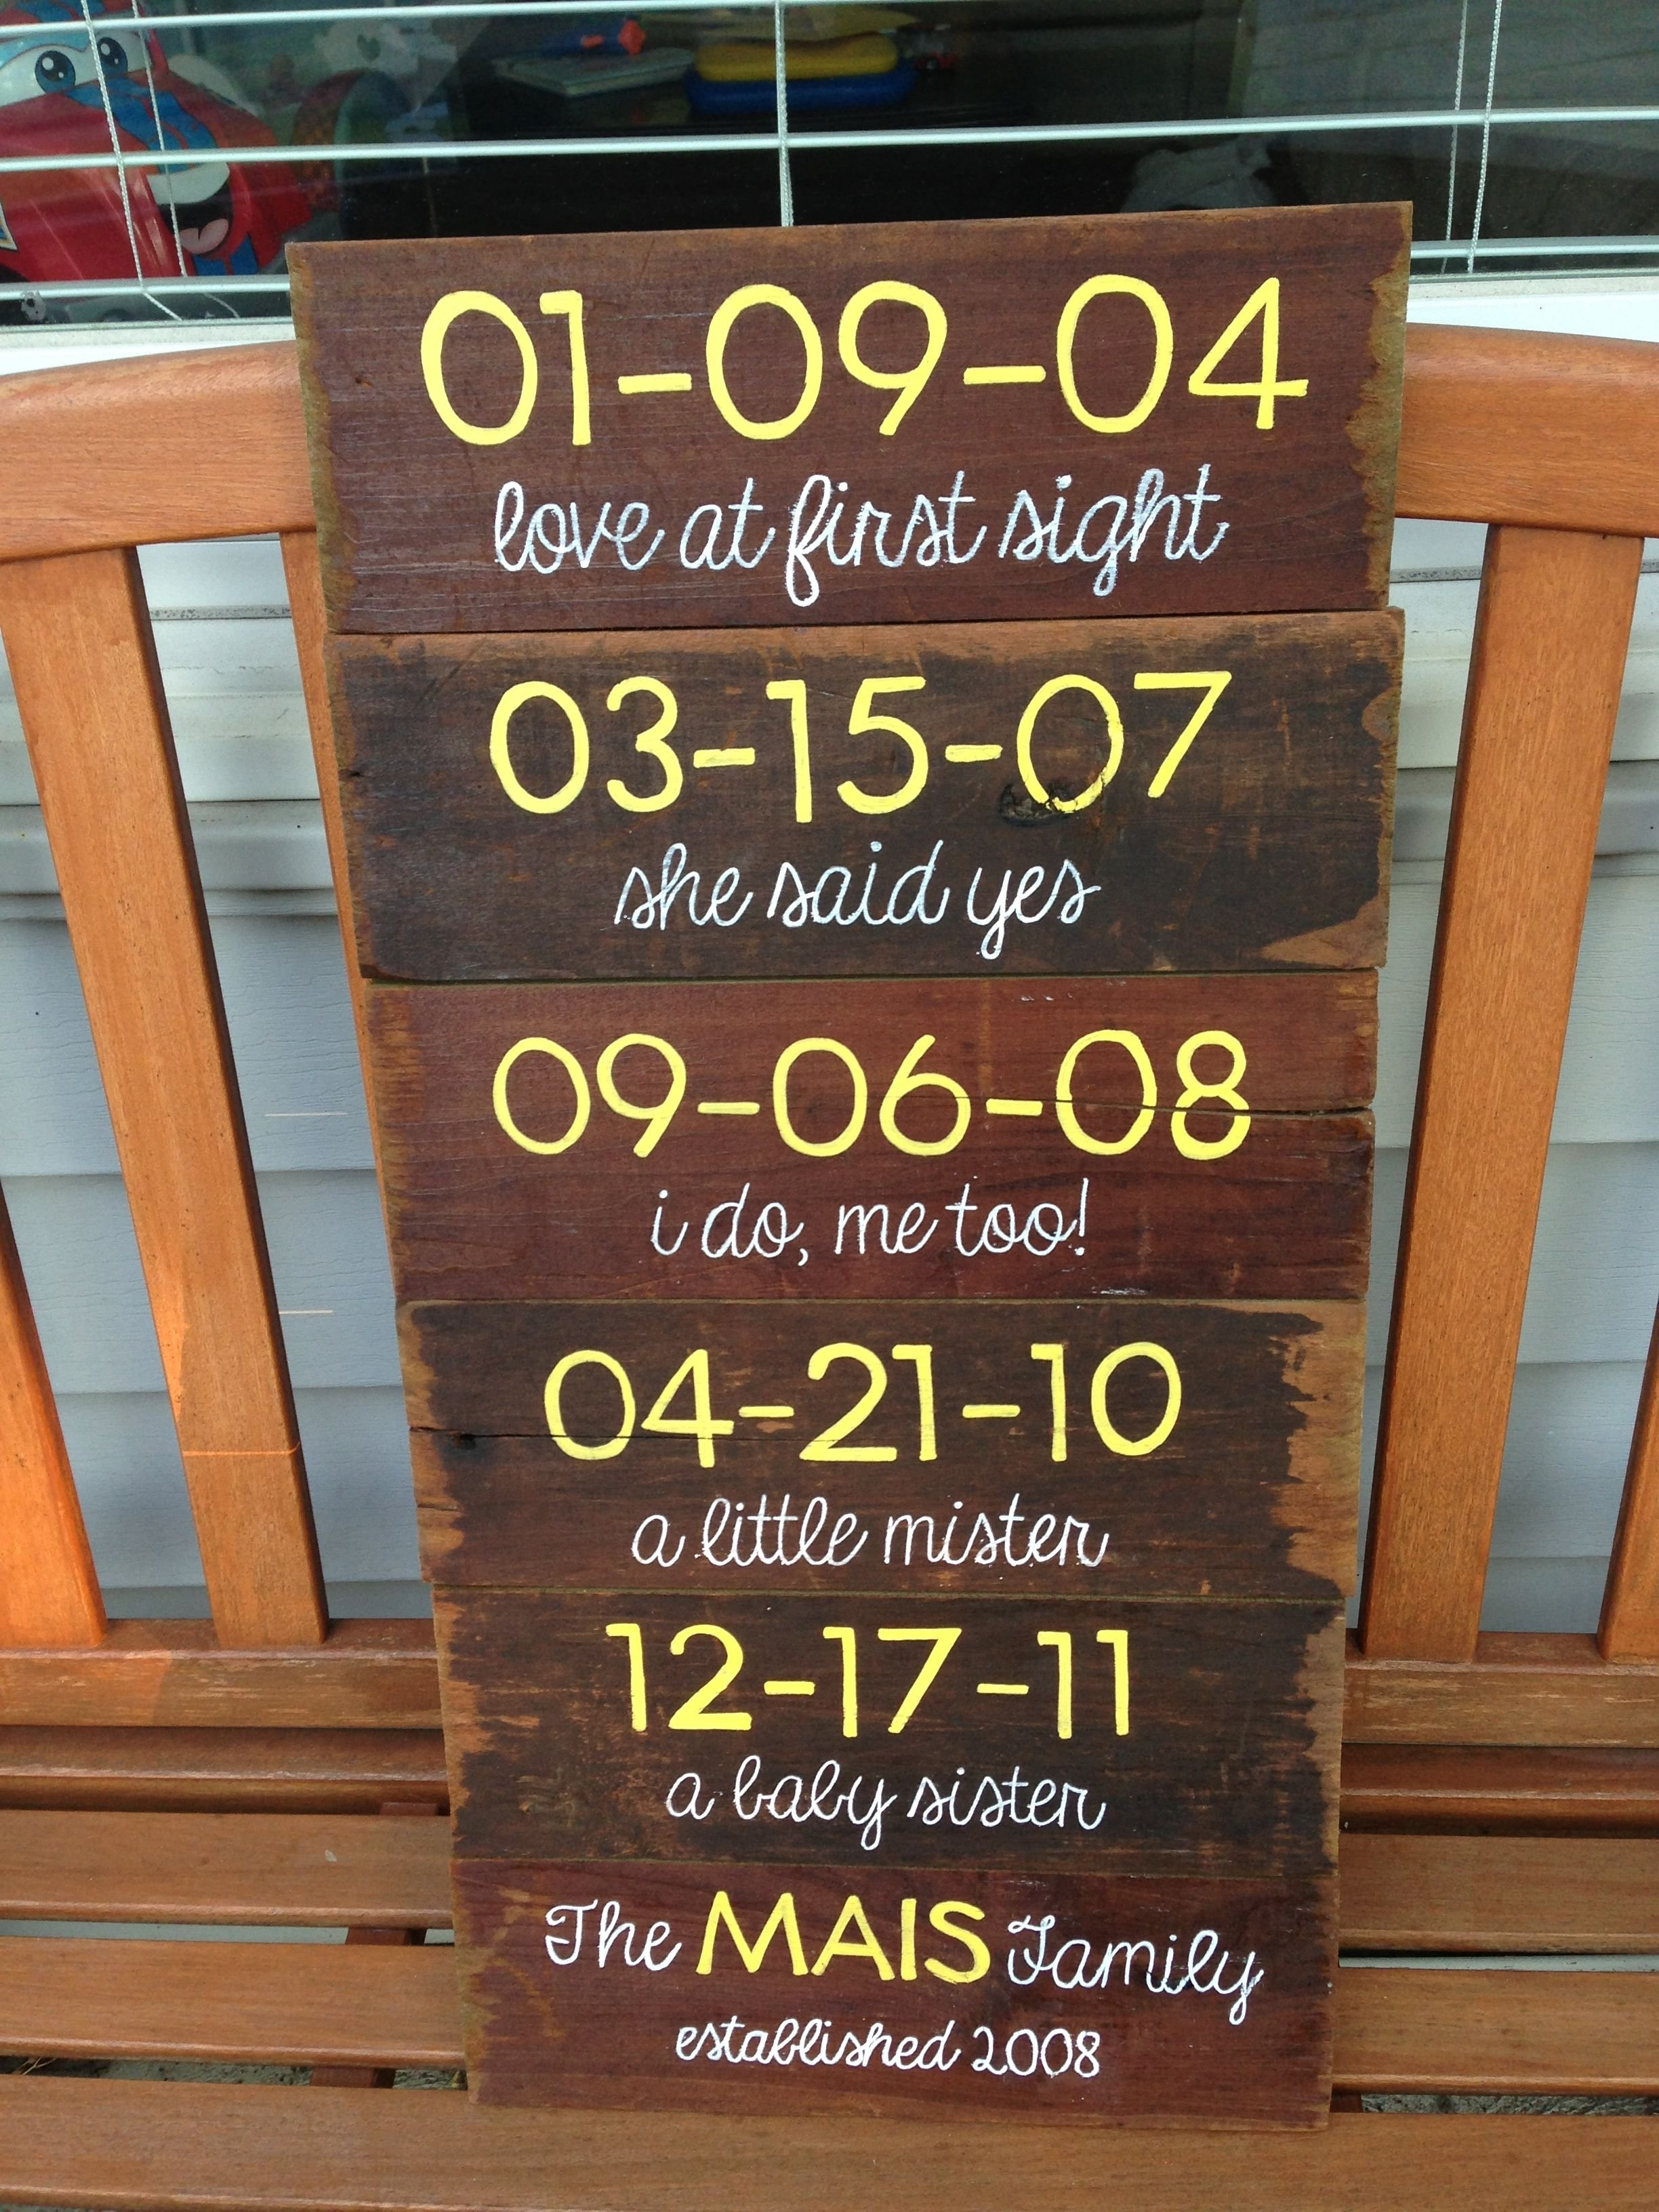 10 Spectacular 5Th Wedding Anniversary Gift Ideas For Her 5 year anniversary gift wood panels with special dates crafty 2020